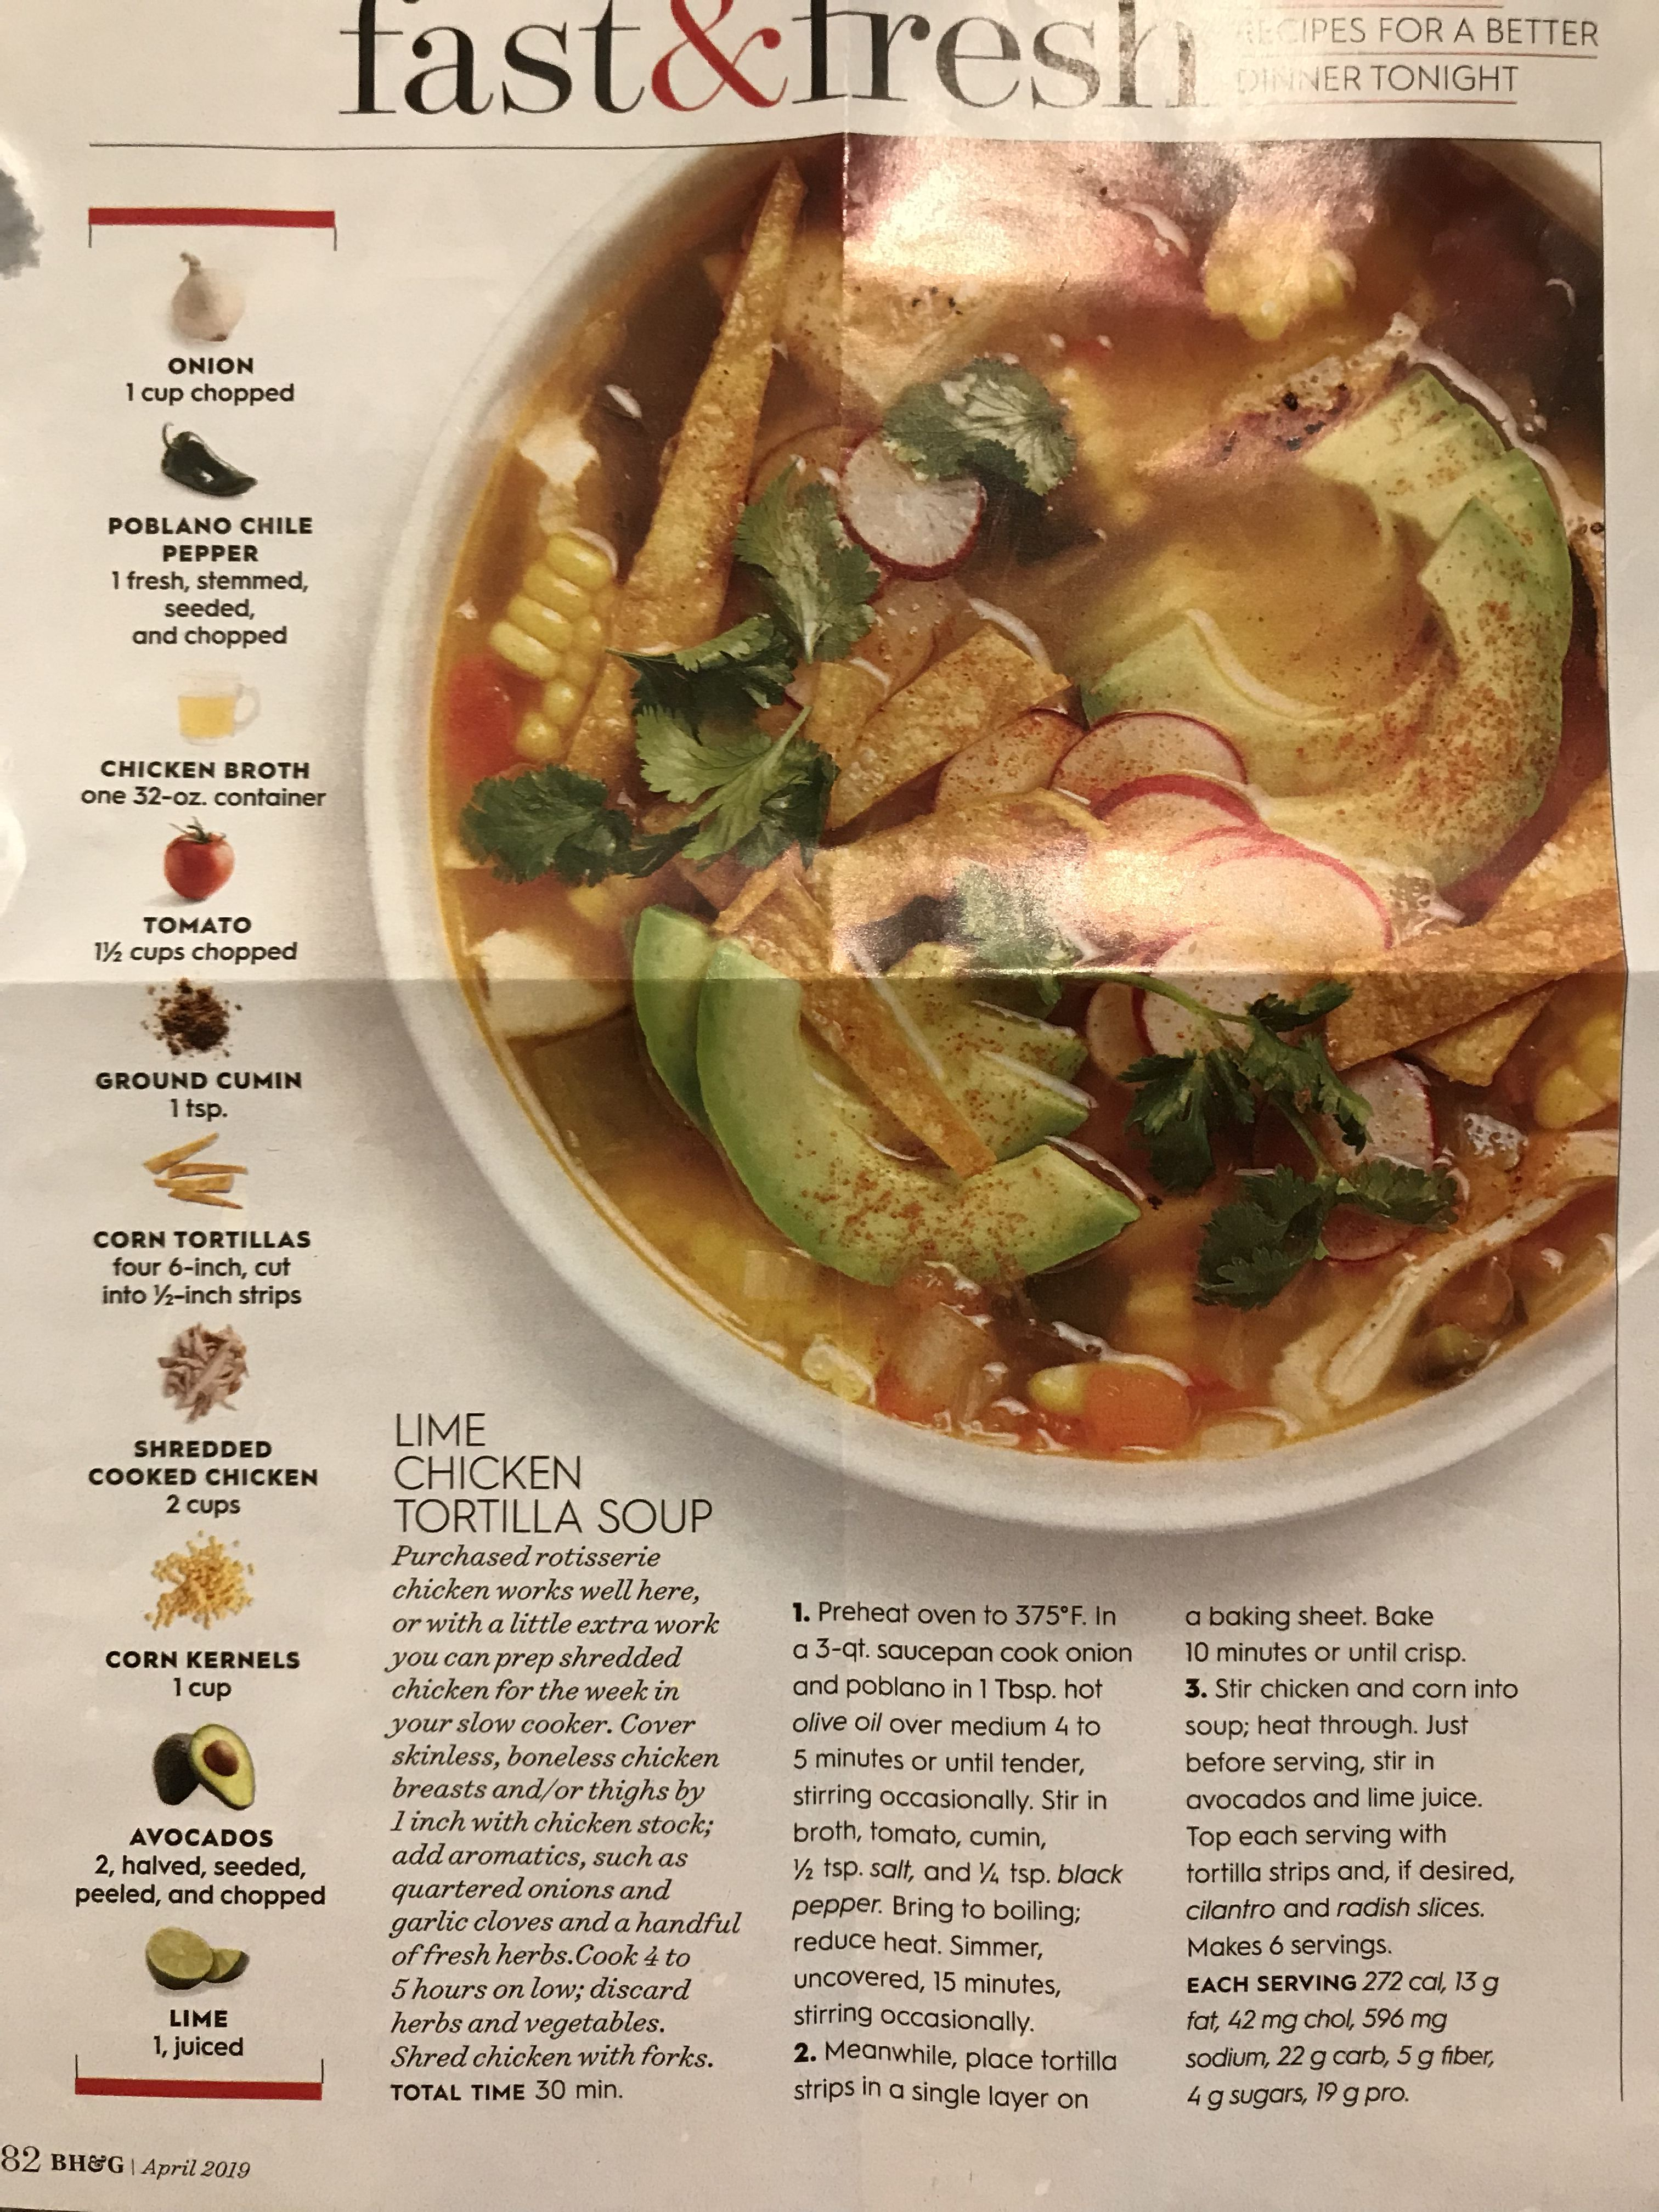 b964c722f131cb7dc132d8bf61b15918 - Better Homes And Gardens Soups And Stews 2019